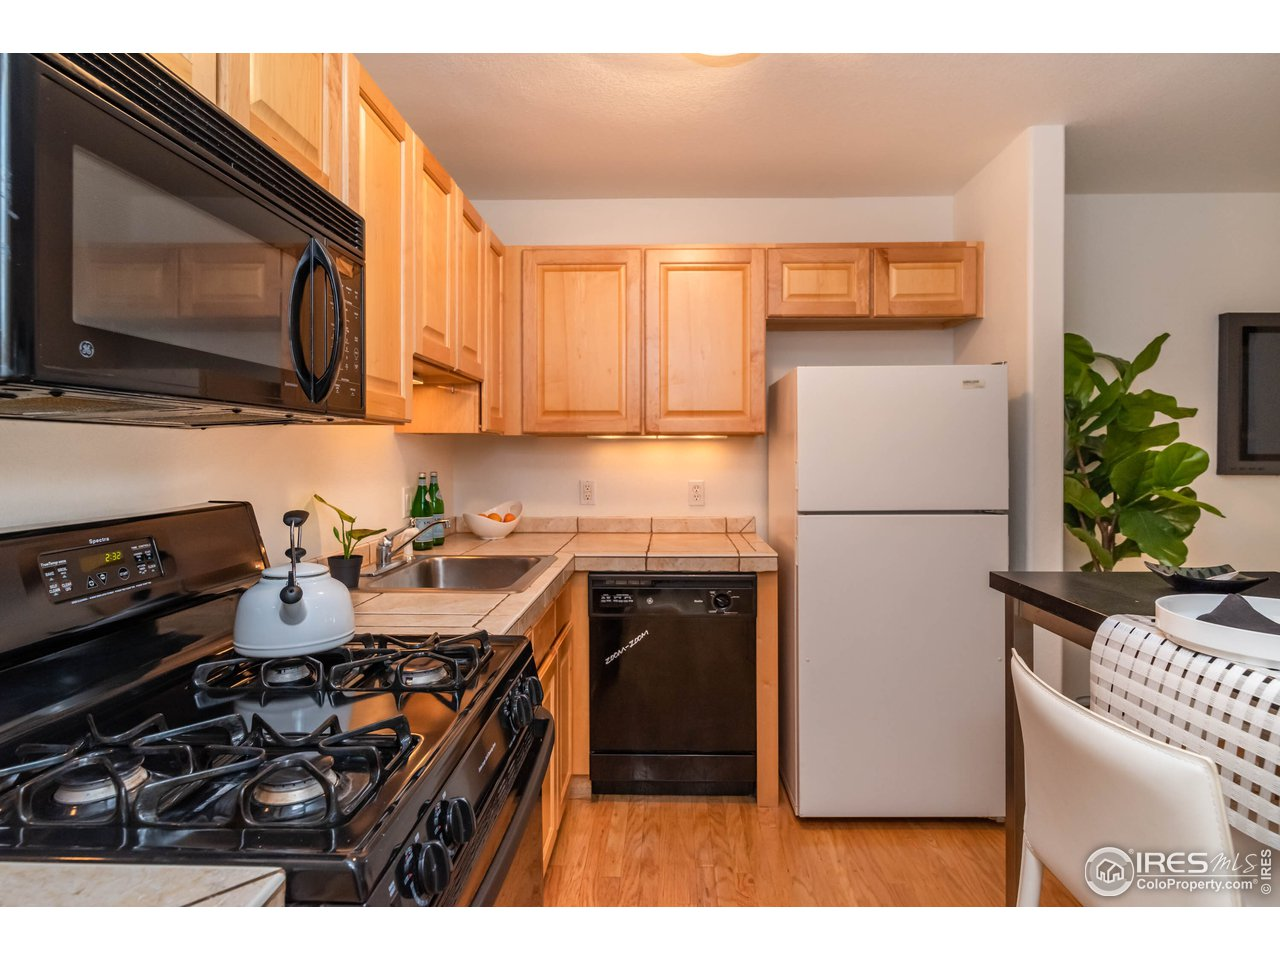 Kitchen w/ Gas Range/Oven and Tile Countertops